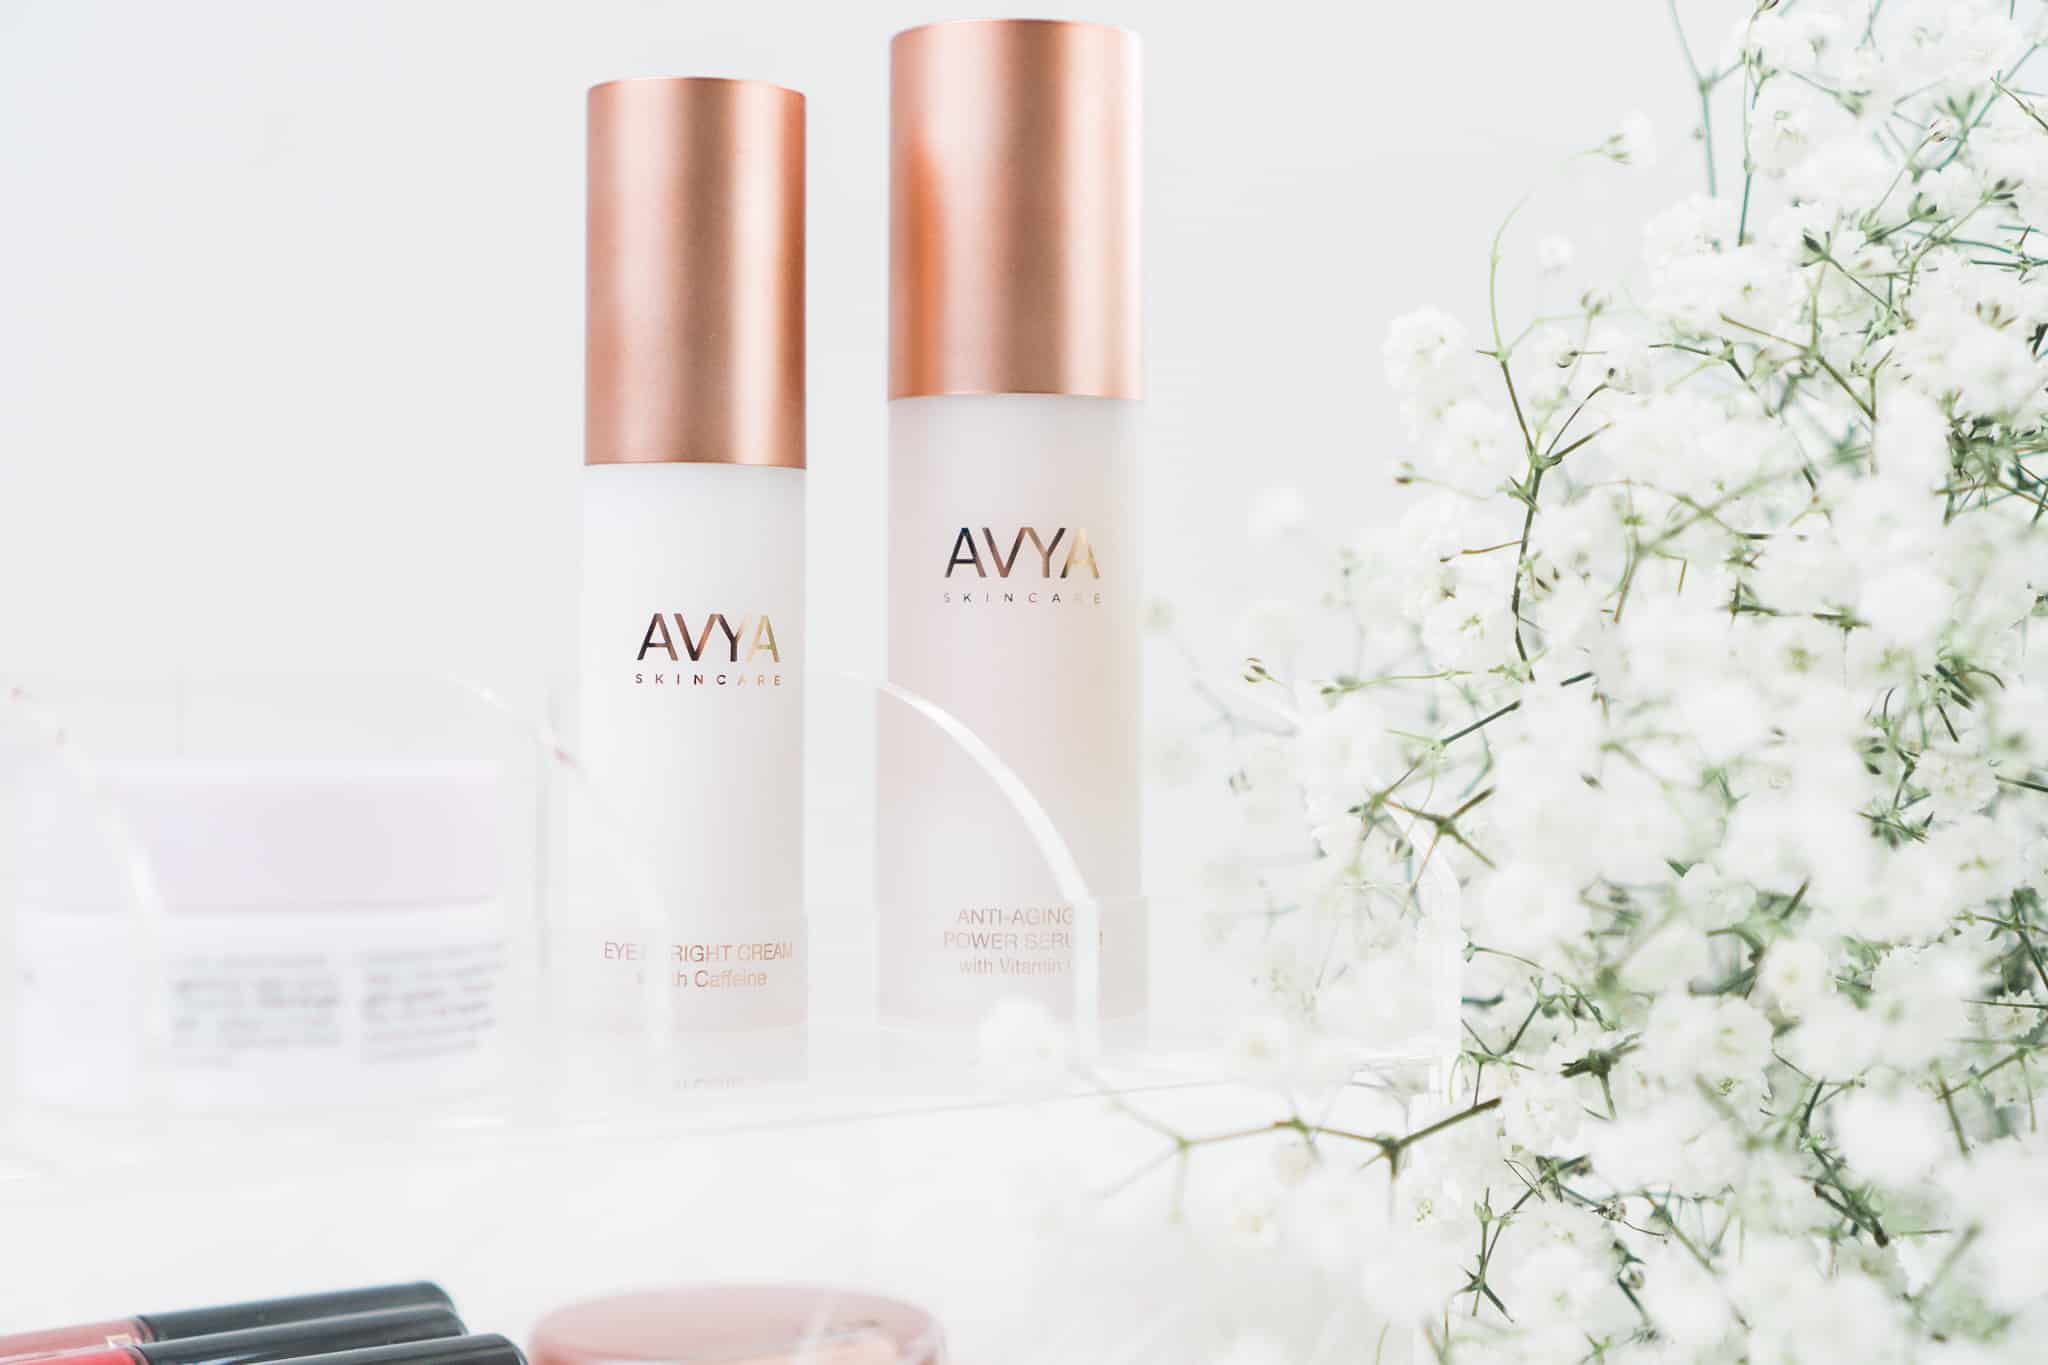 AvyaSkincare - Lace and Sparkles